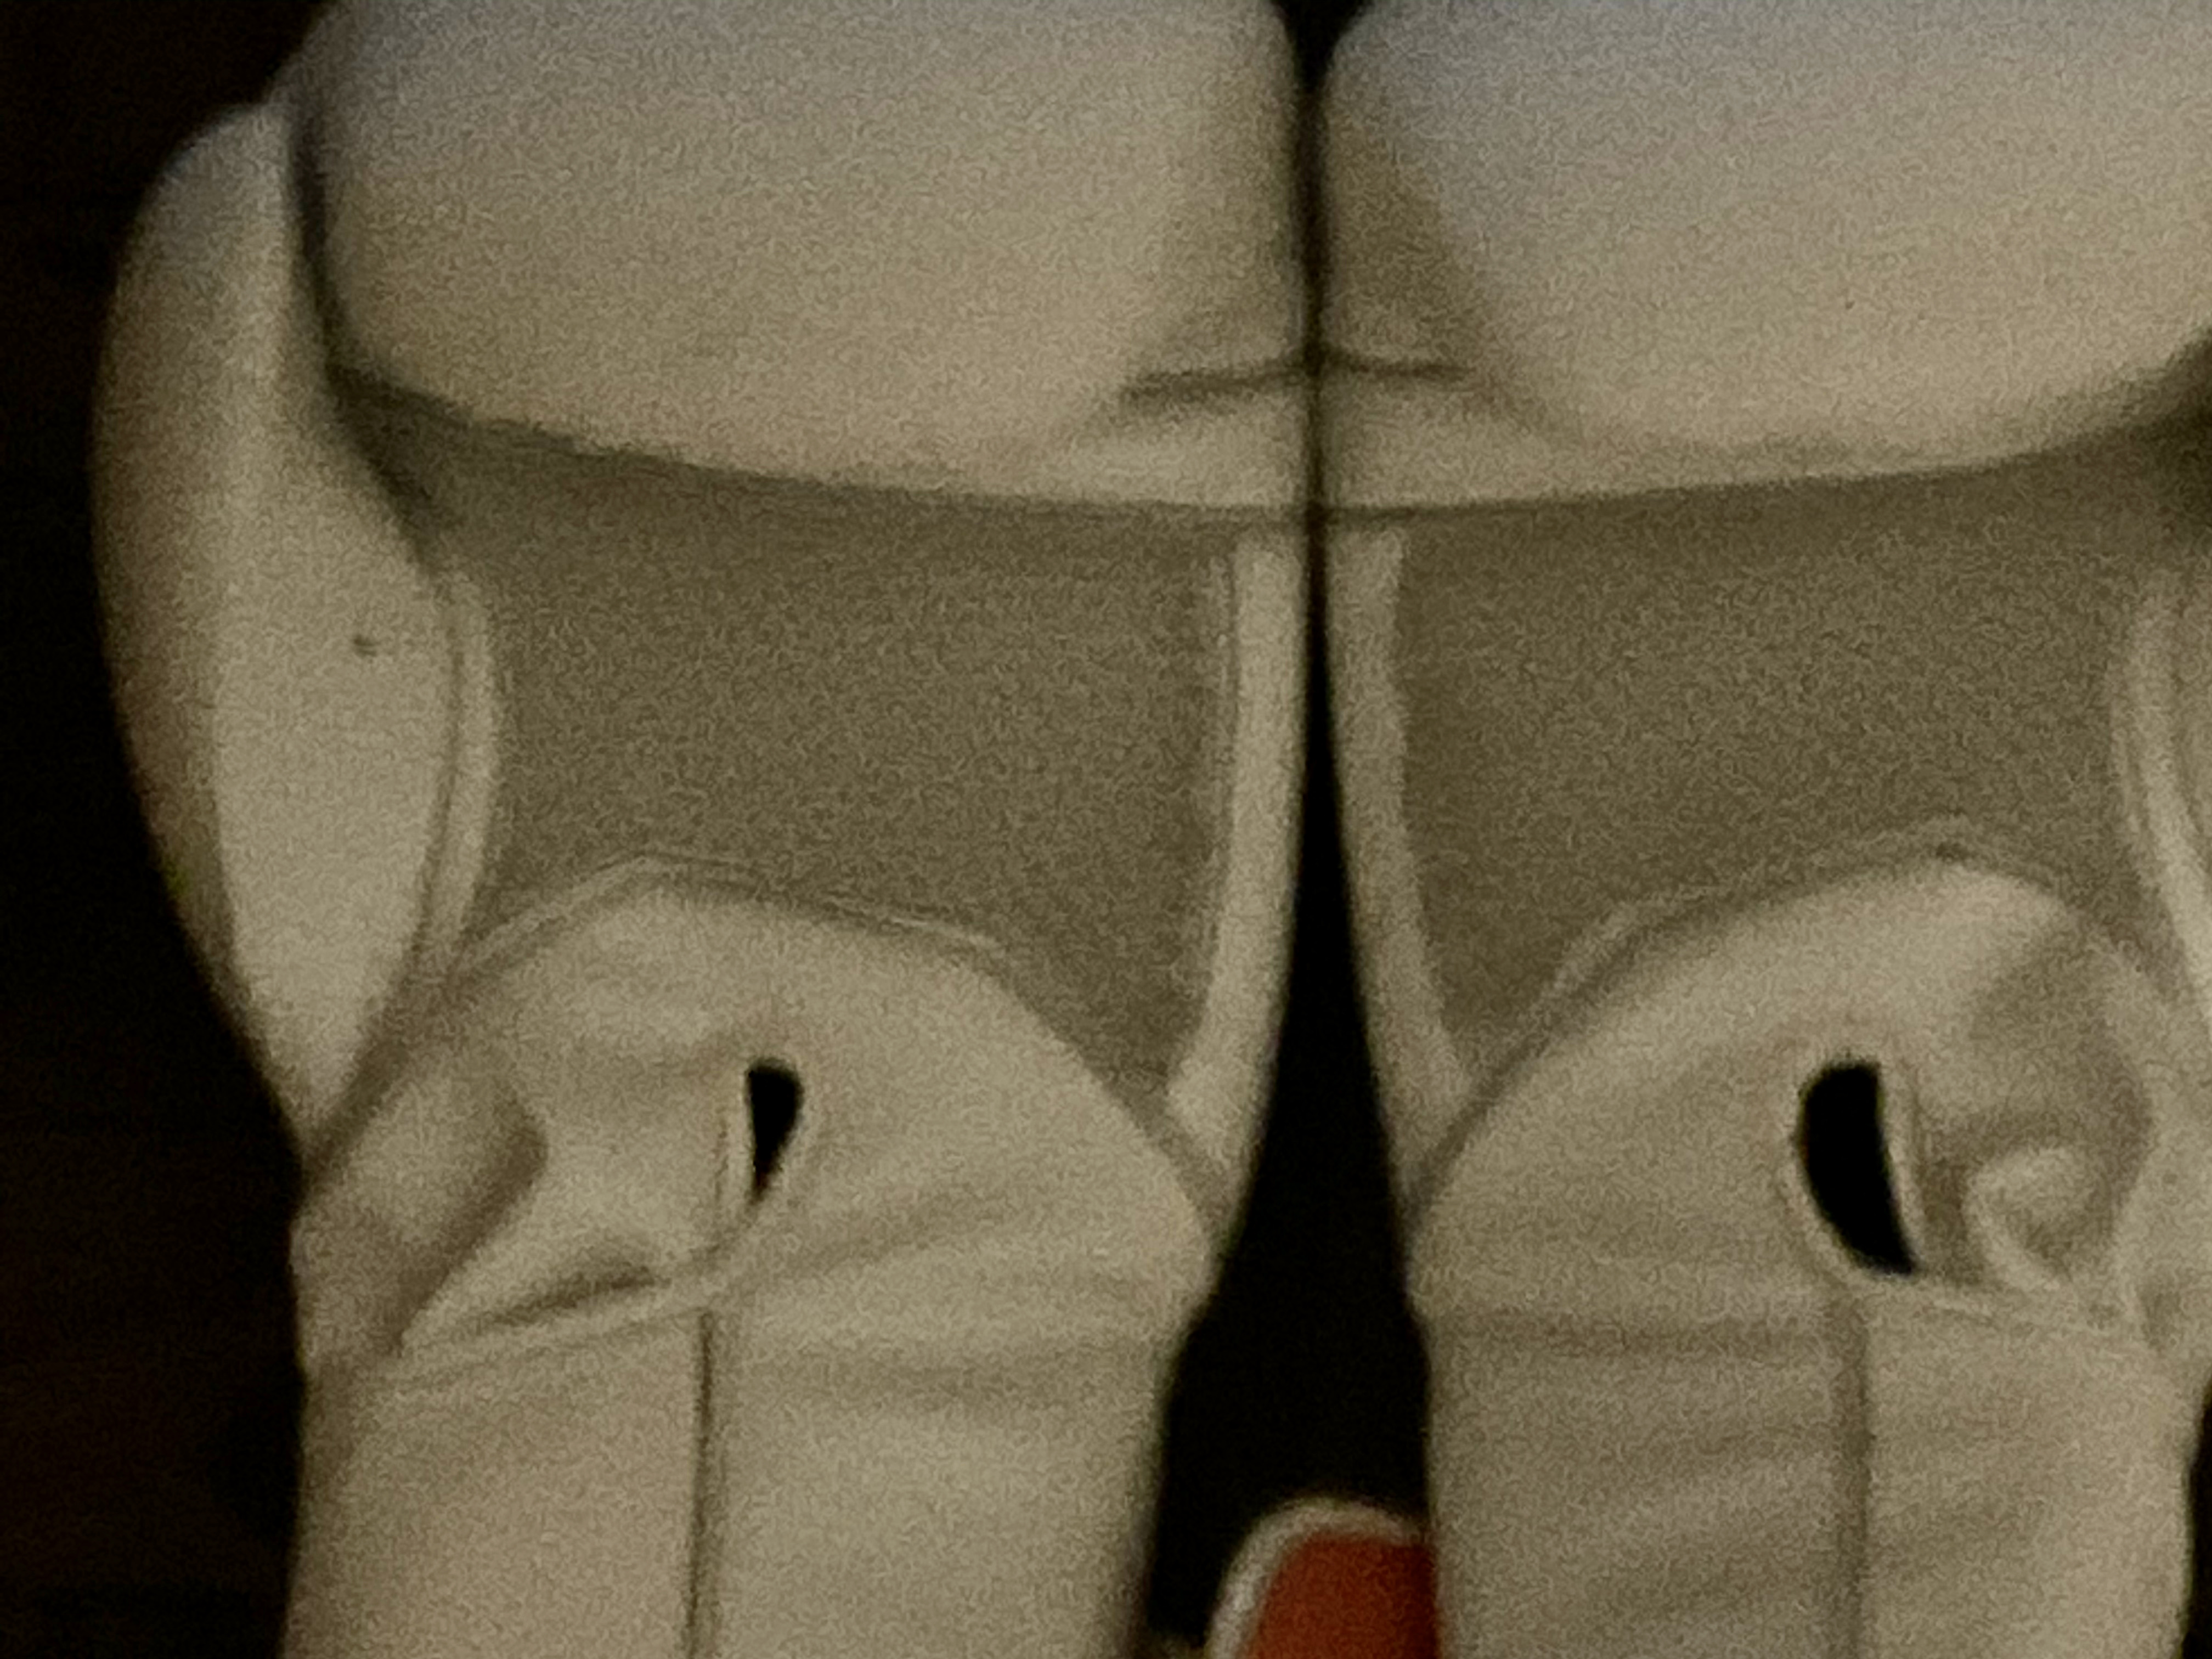 Close-up image of white boxing gloves. Photo taken by the author.